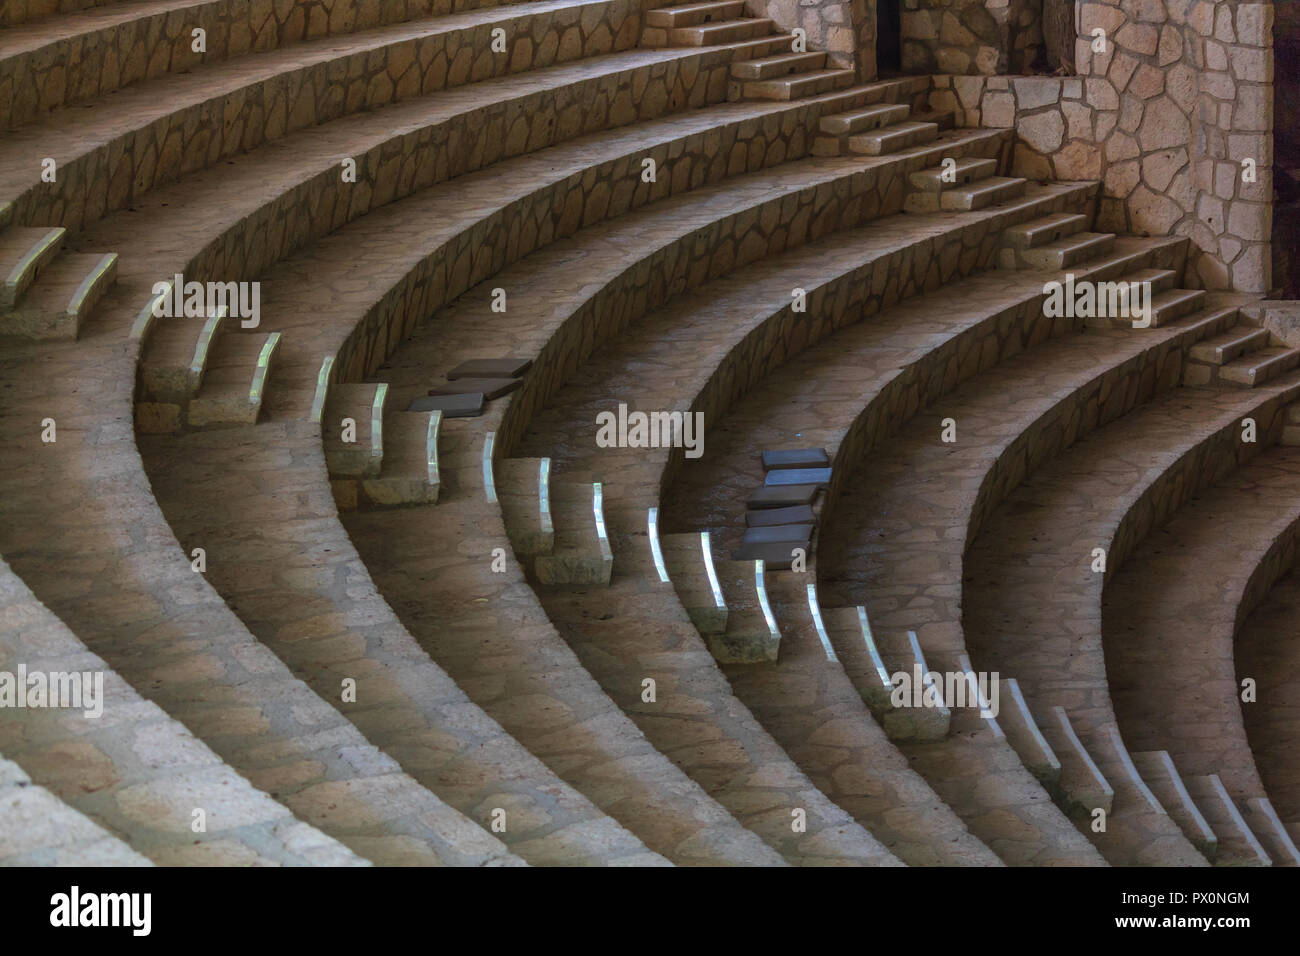 Empty amphitheater steps made of white stone. There is harmony in empty buildings. the parallel curves please the eye and bring peace to OCD people Stock Photo